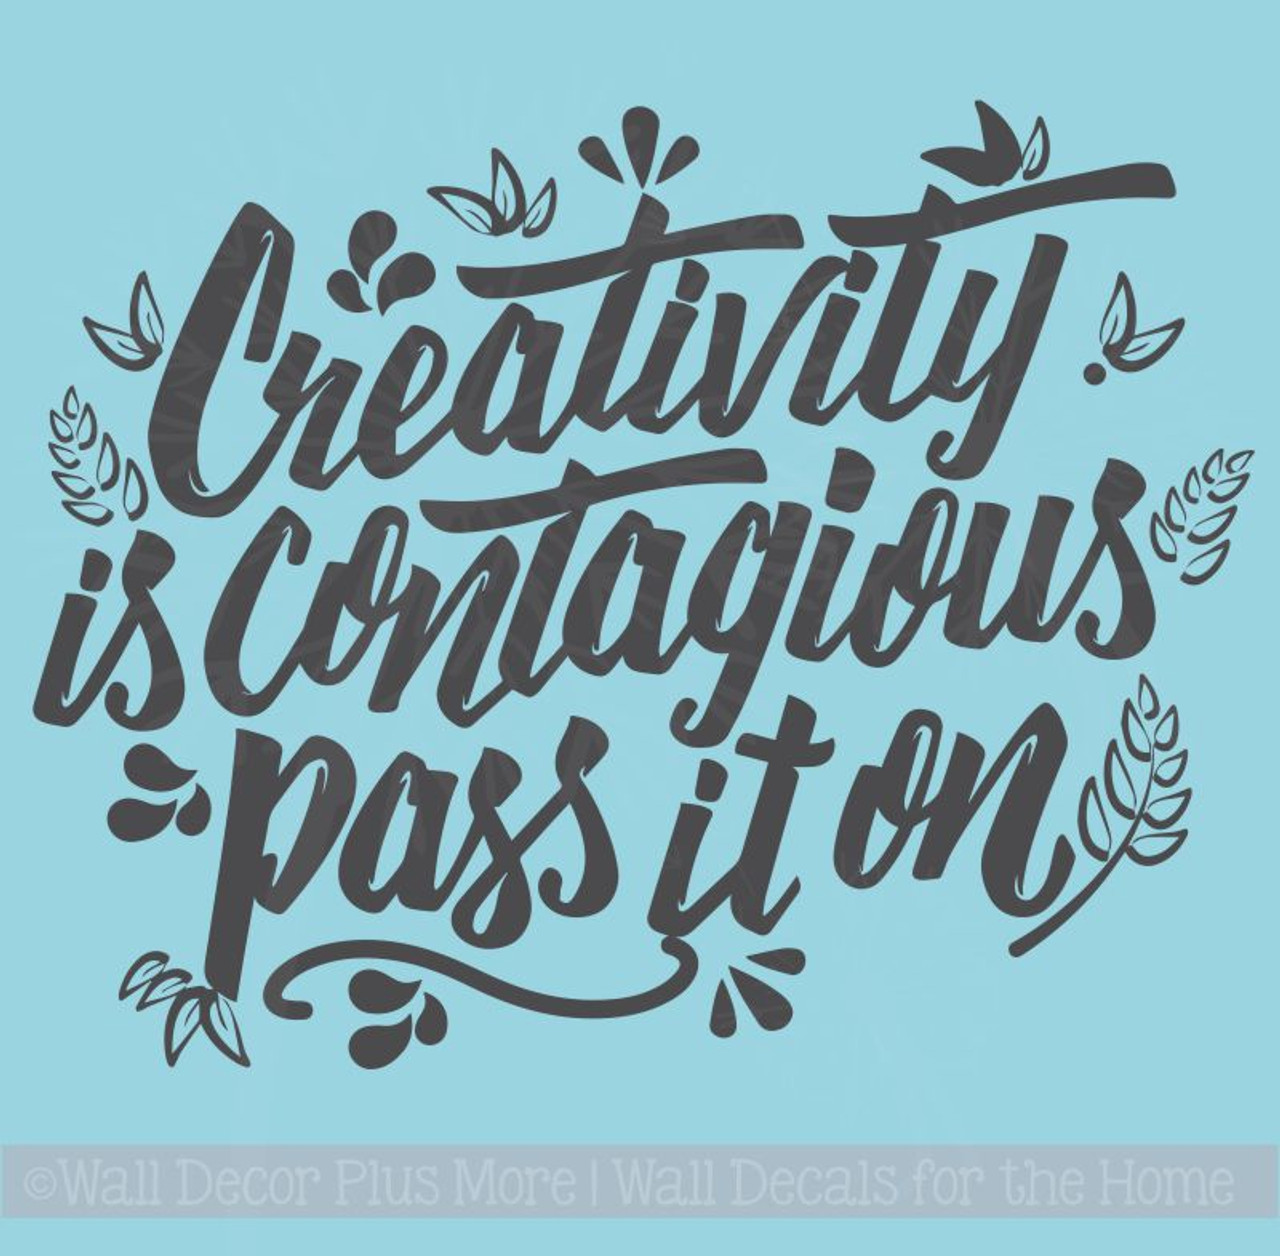 Inspirational Wall Quotes Creativity Is Contagious Vinyl ...